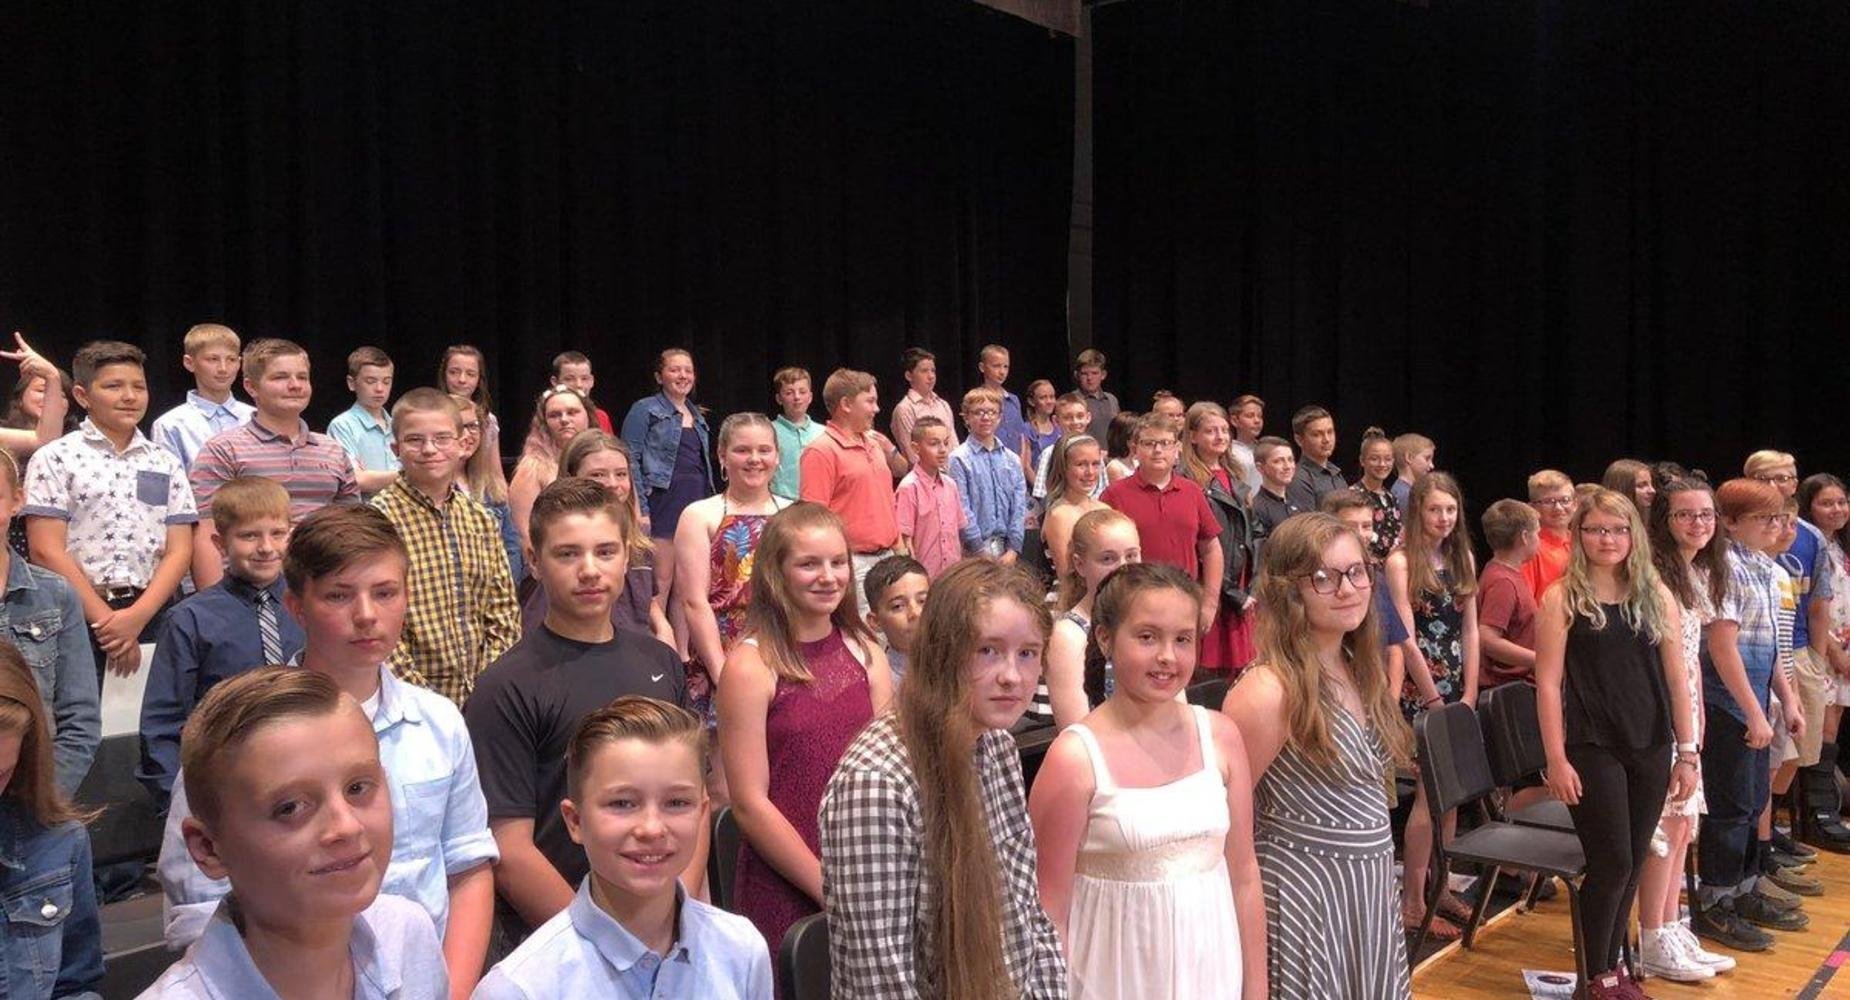 6th grade students moving up ceremony